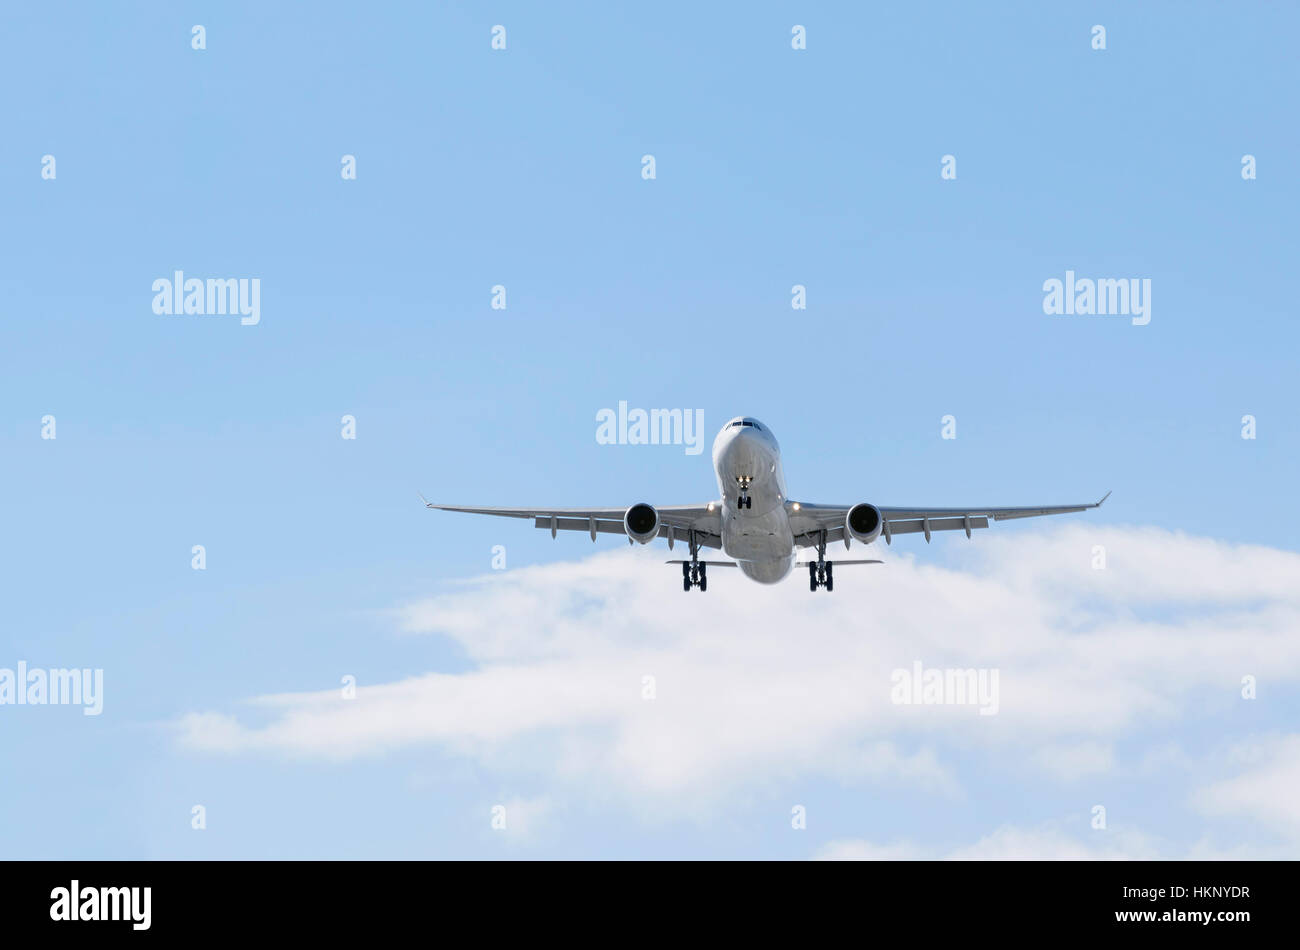 Airplane Airbus A330, of Iberia airline. Blue sky with some clouds. - Stock Image